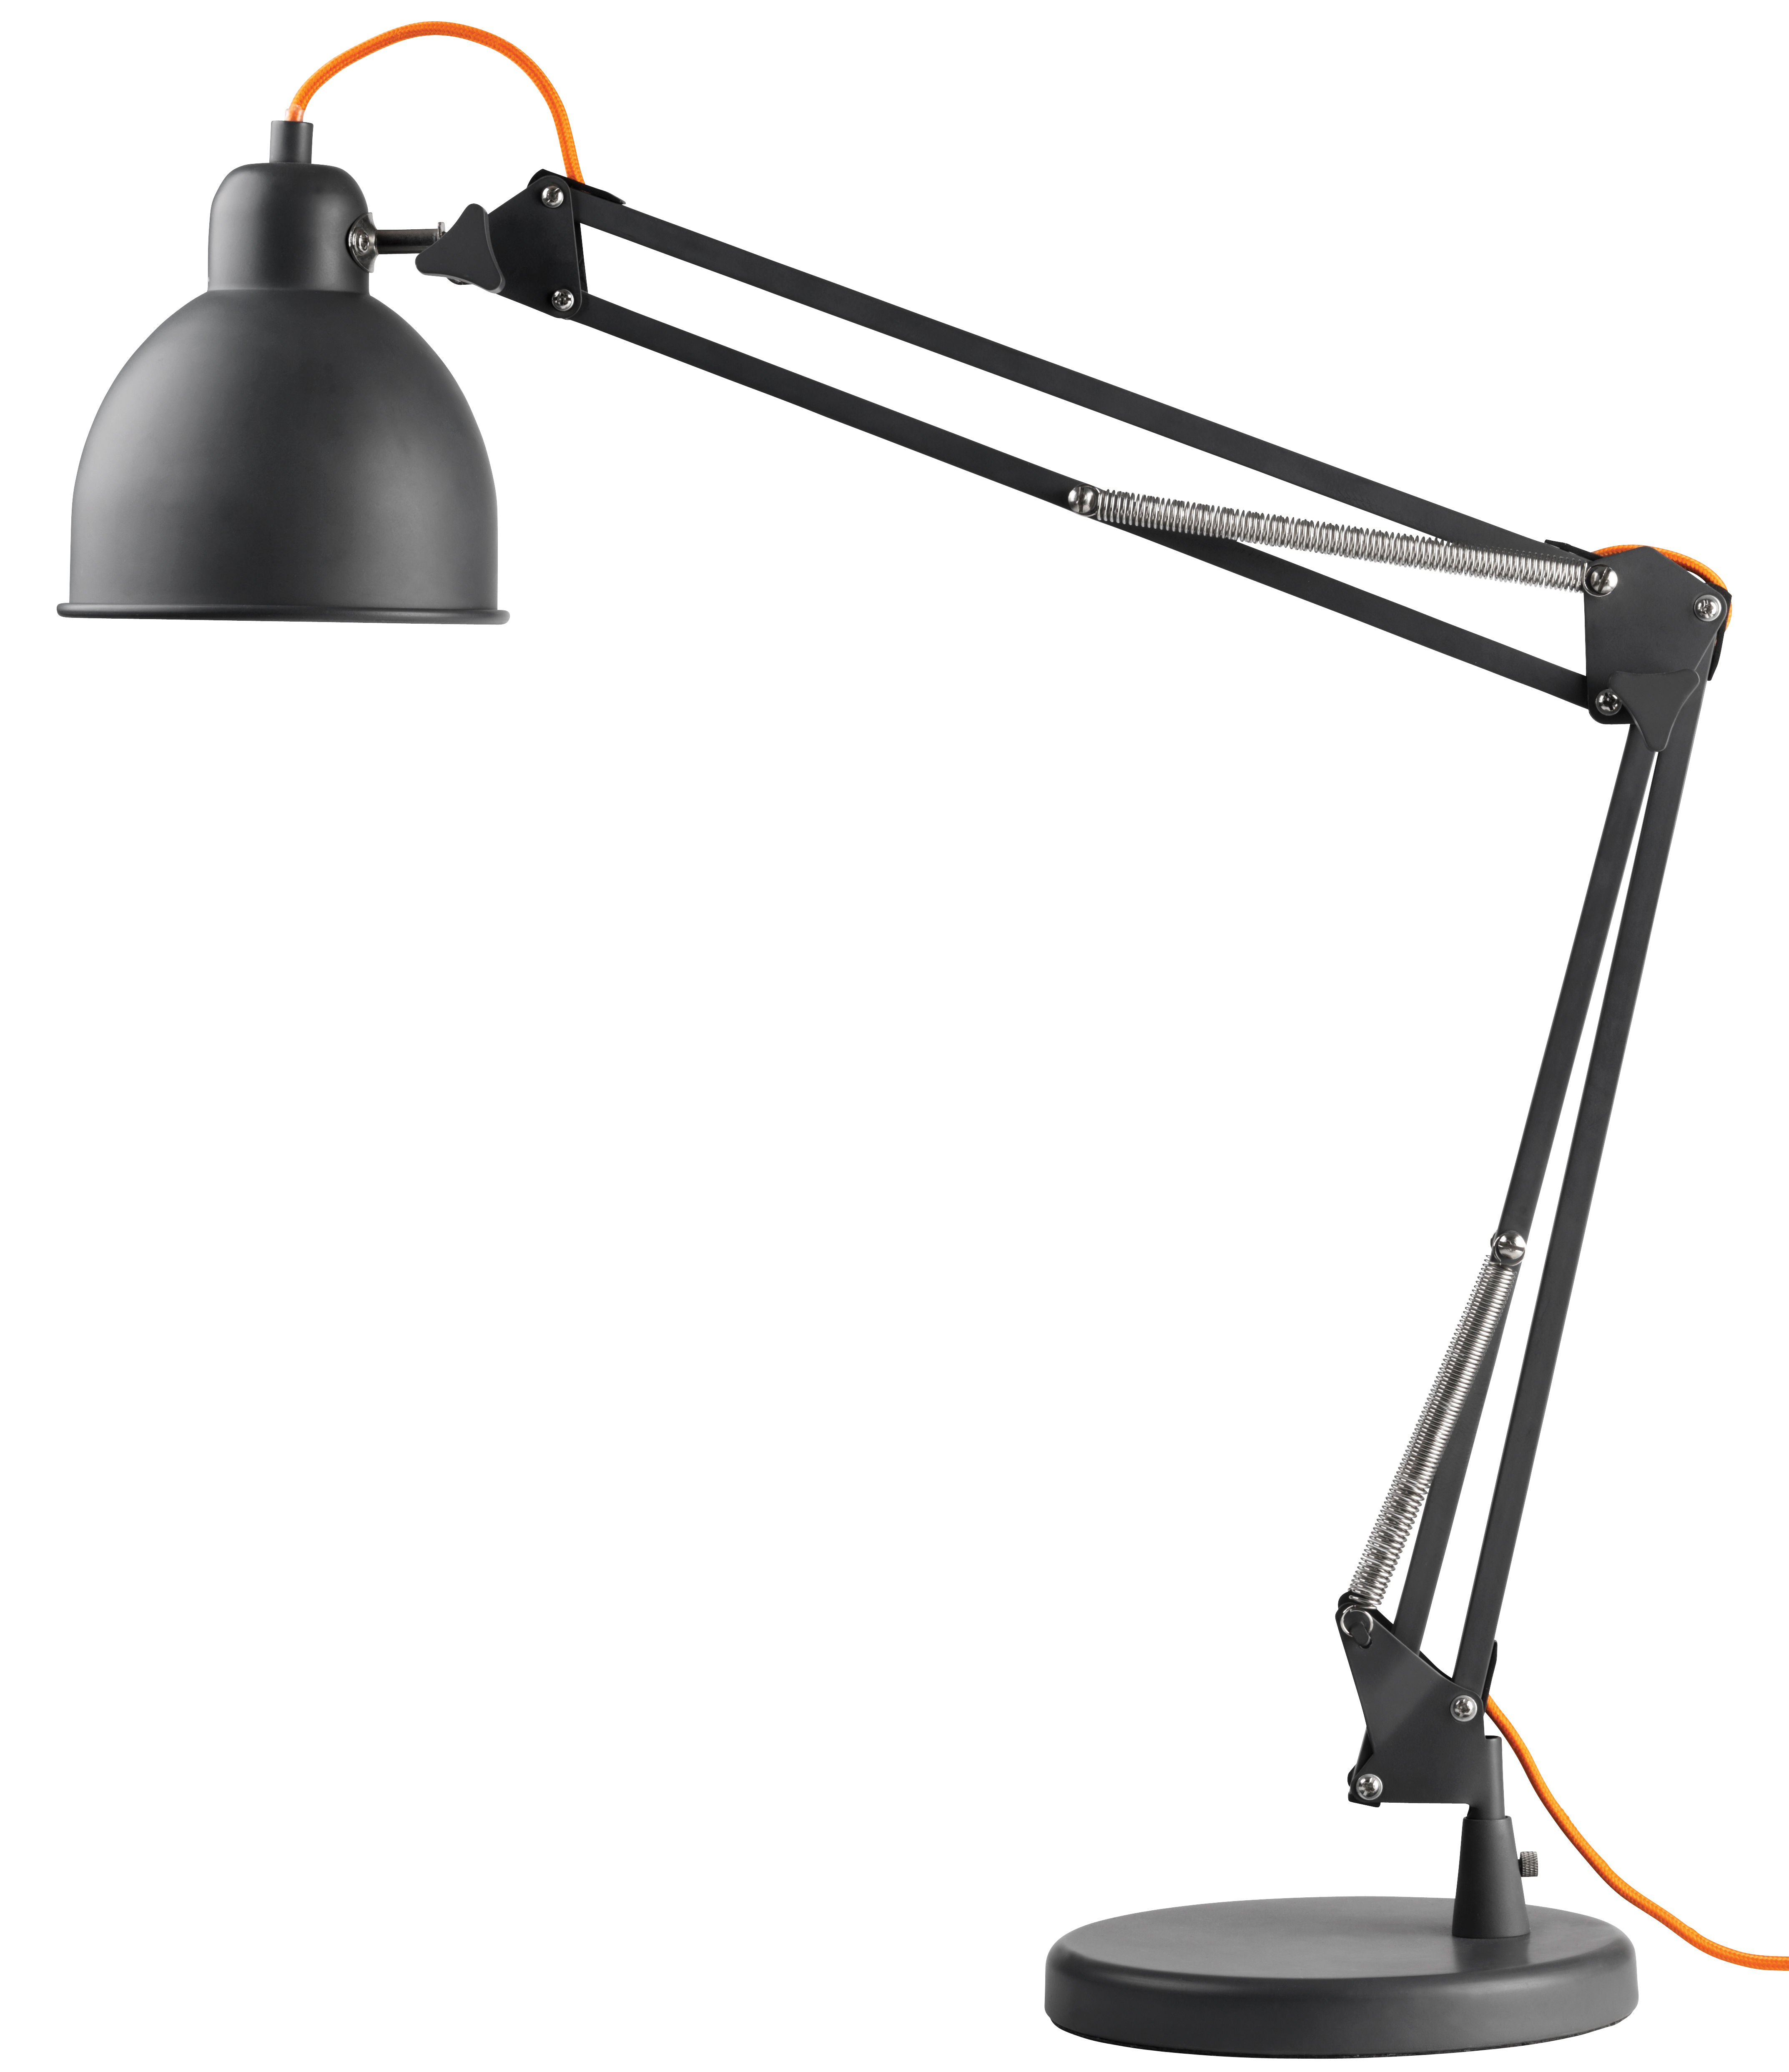 Industry table lamp grey orange cable by frandsen for Design table lamp giffy 17 7